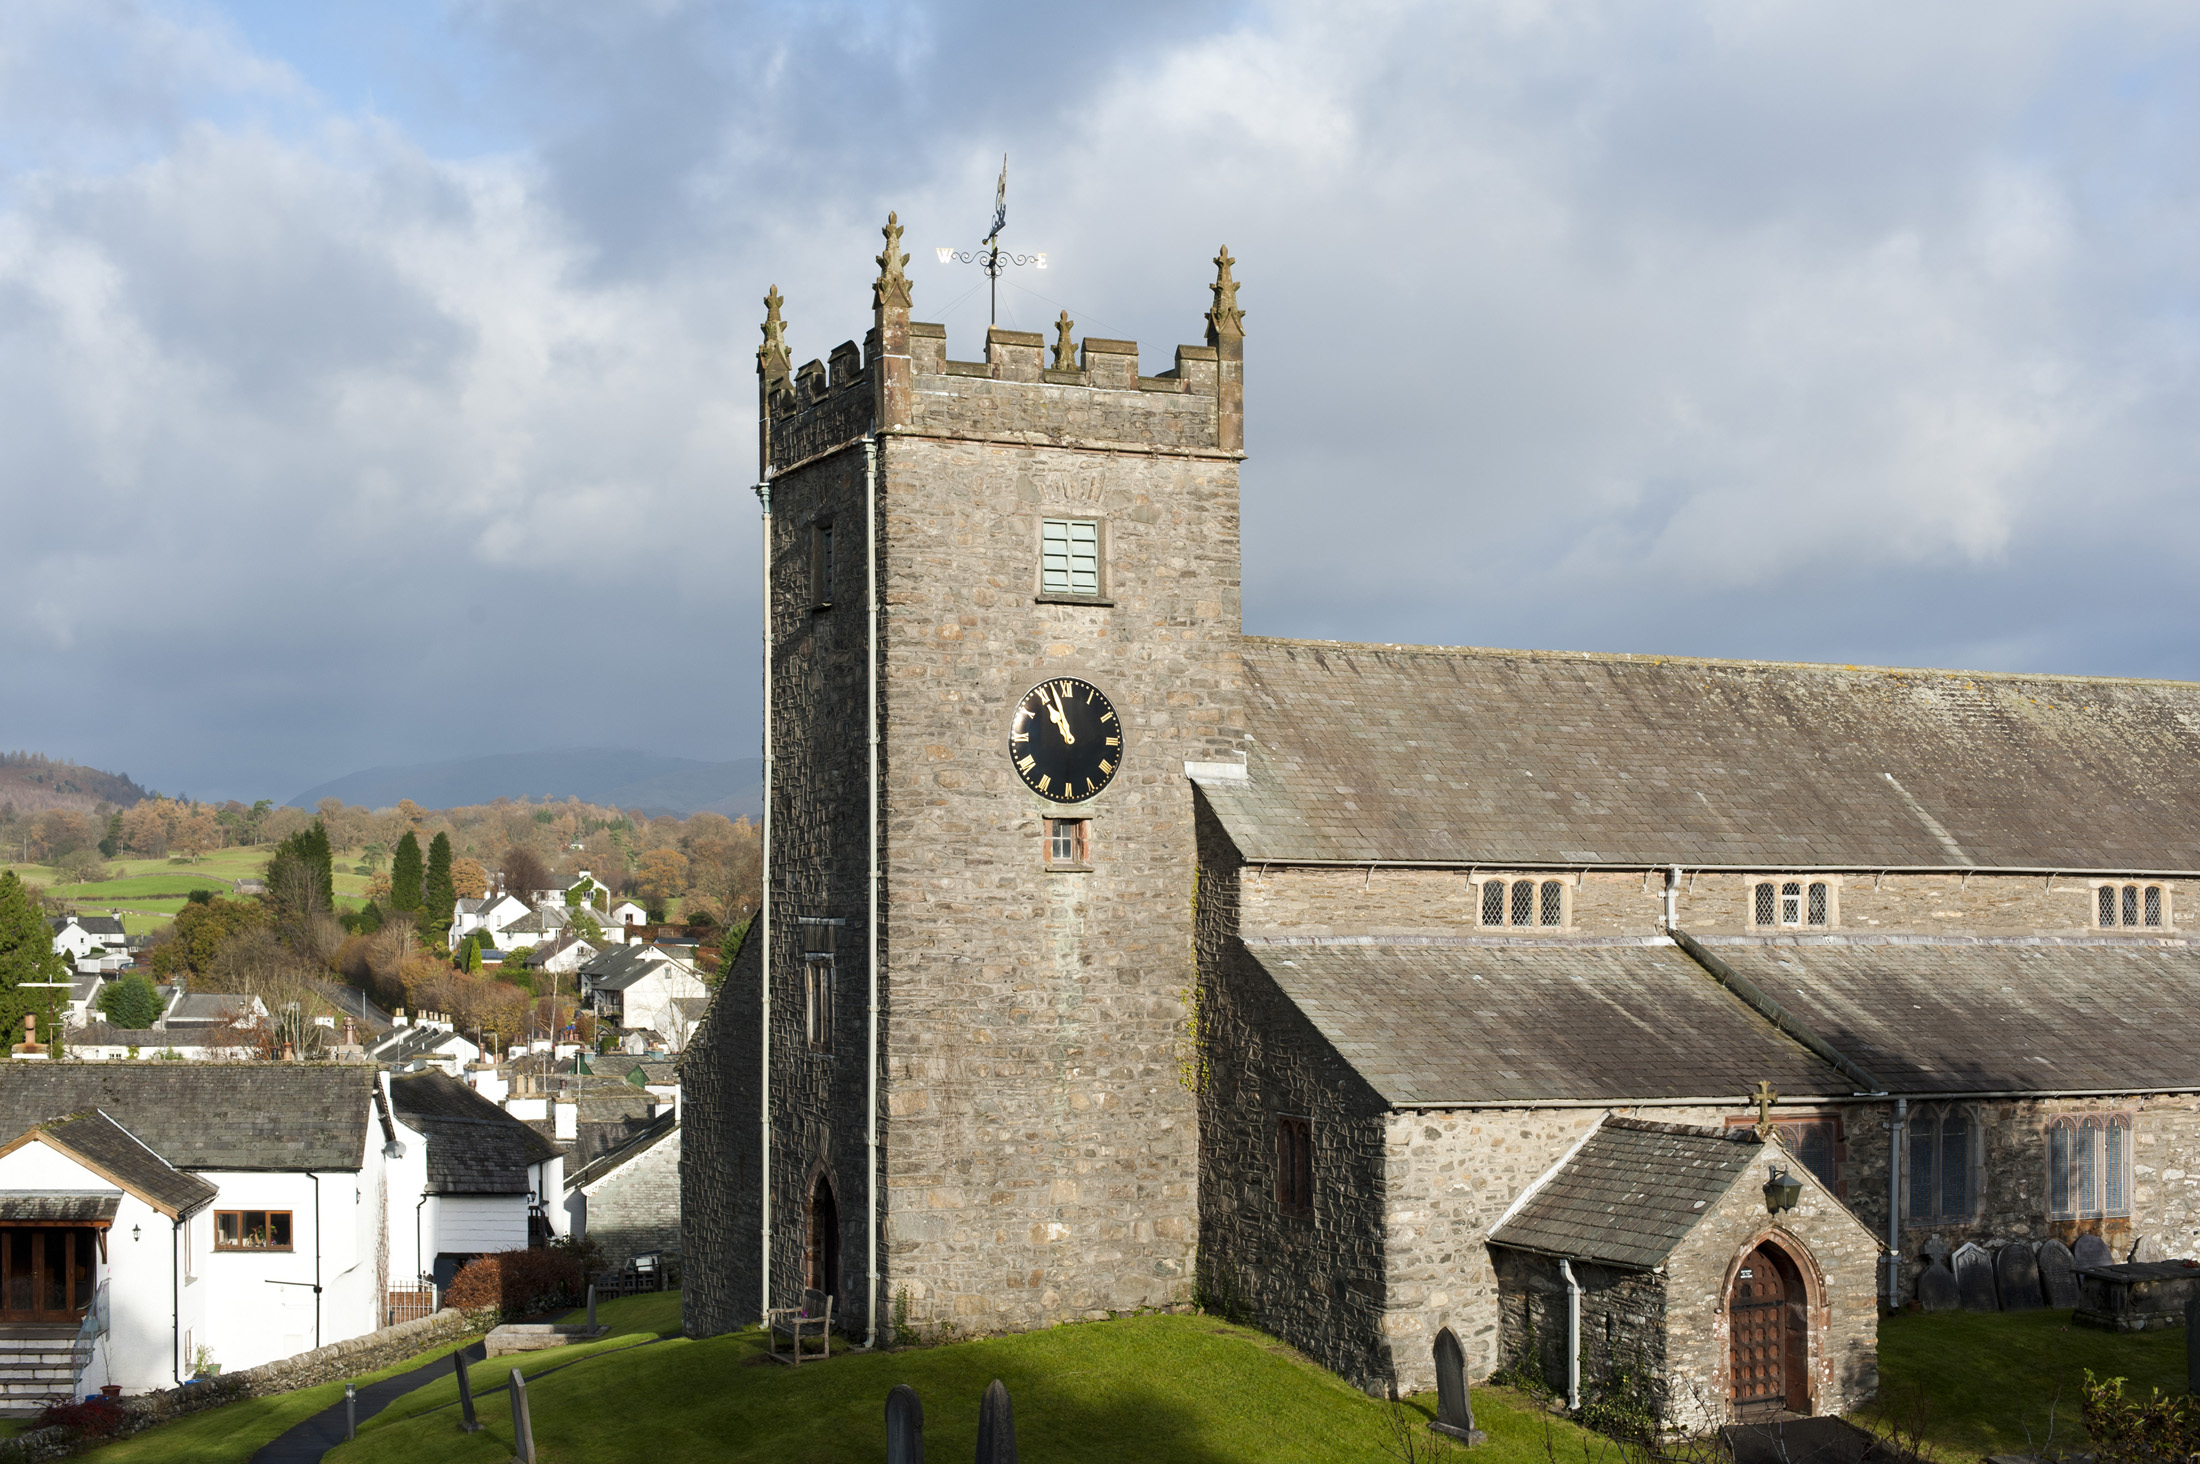 View of the old stone building and clock tower of St Michael and All Angels Church in the quaint whitewashed village of Hawkshead in the Lake District in Cumbria